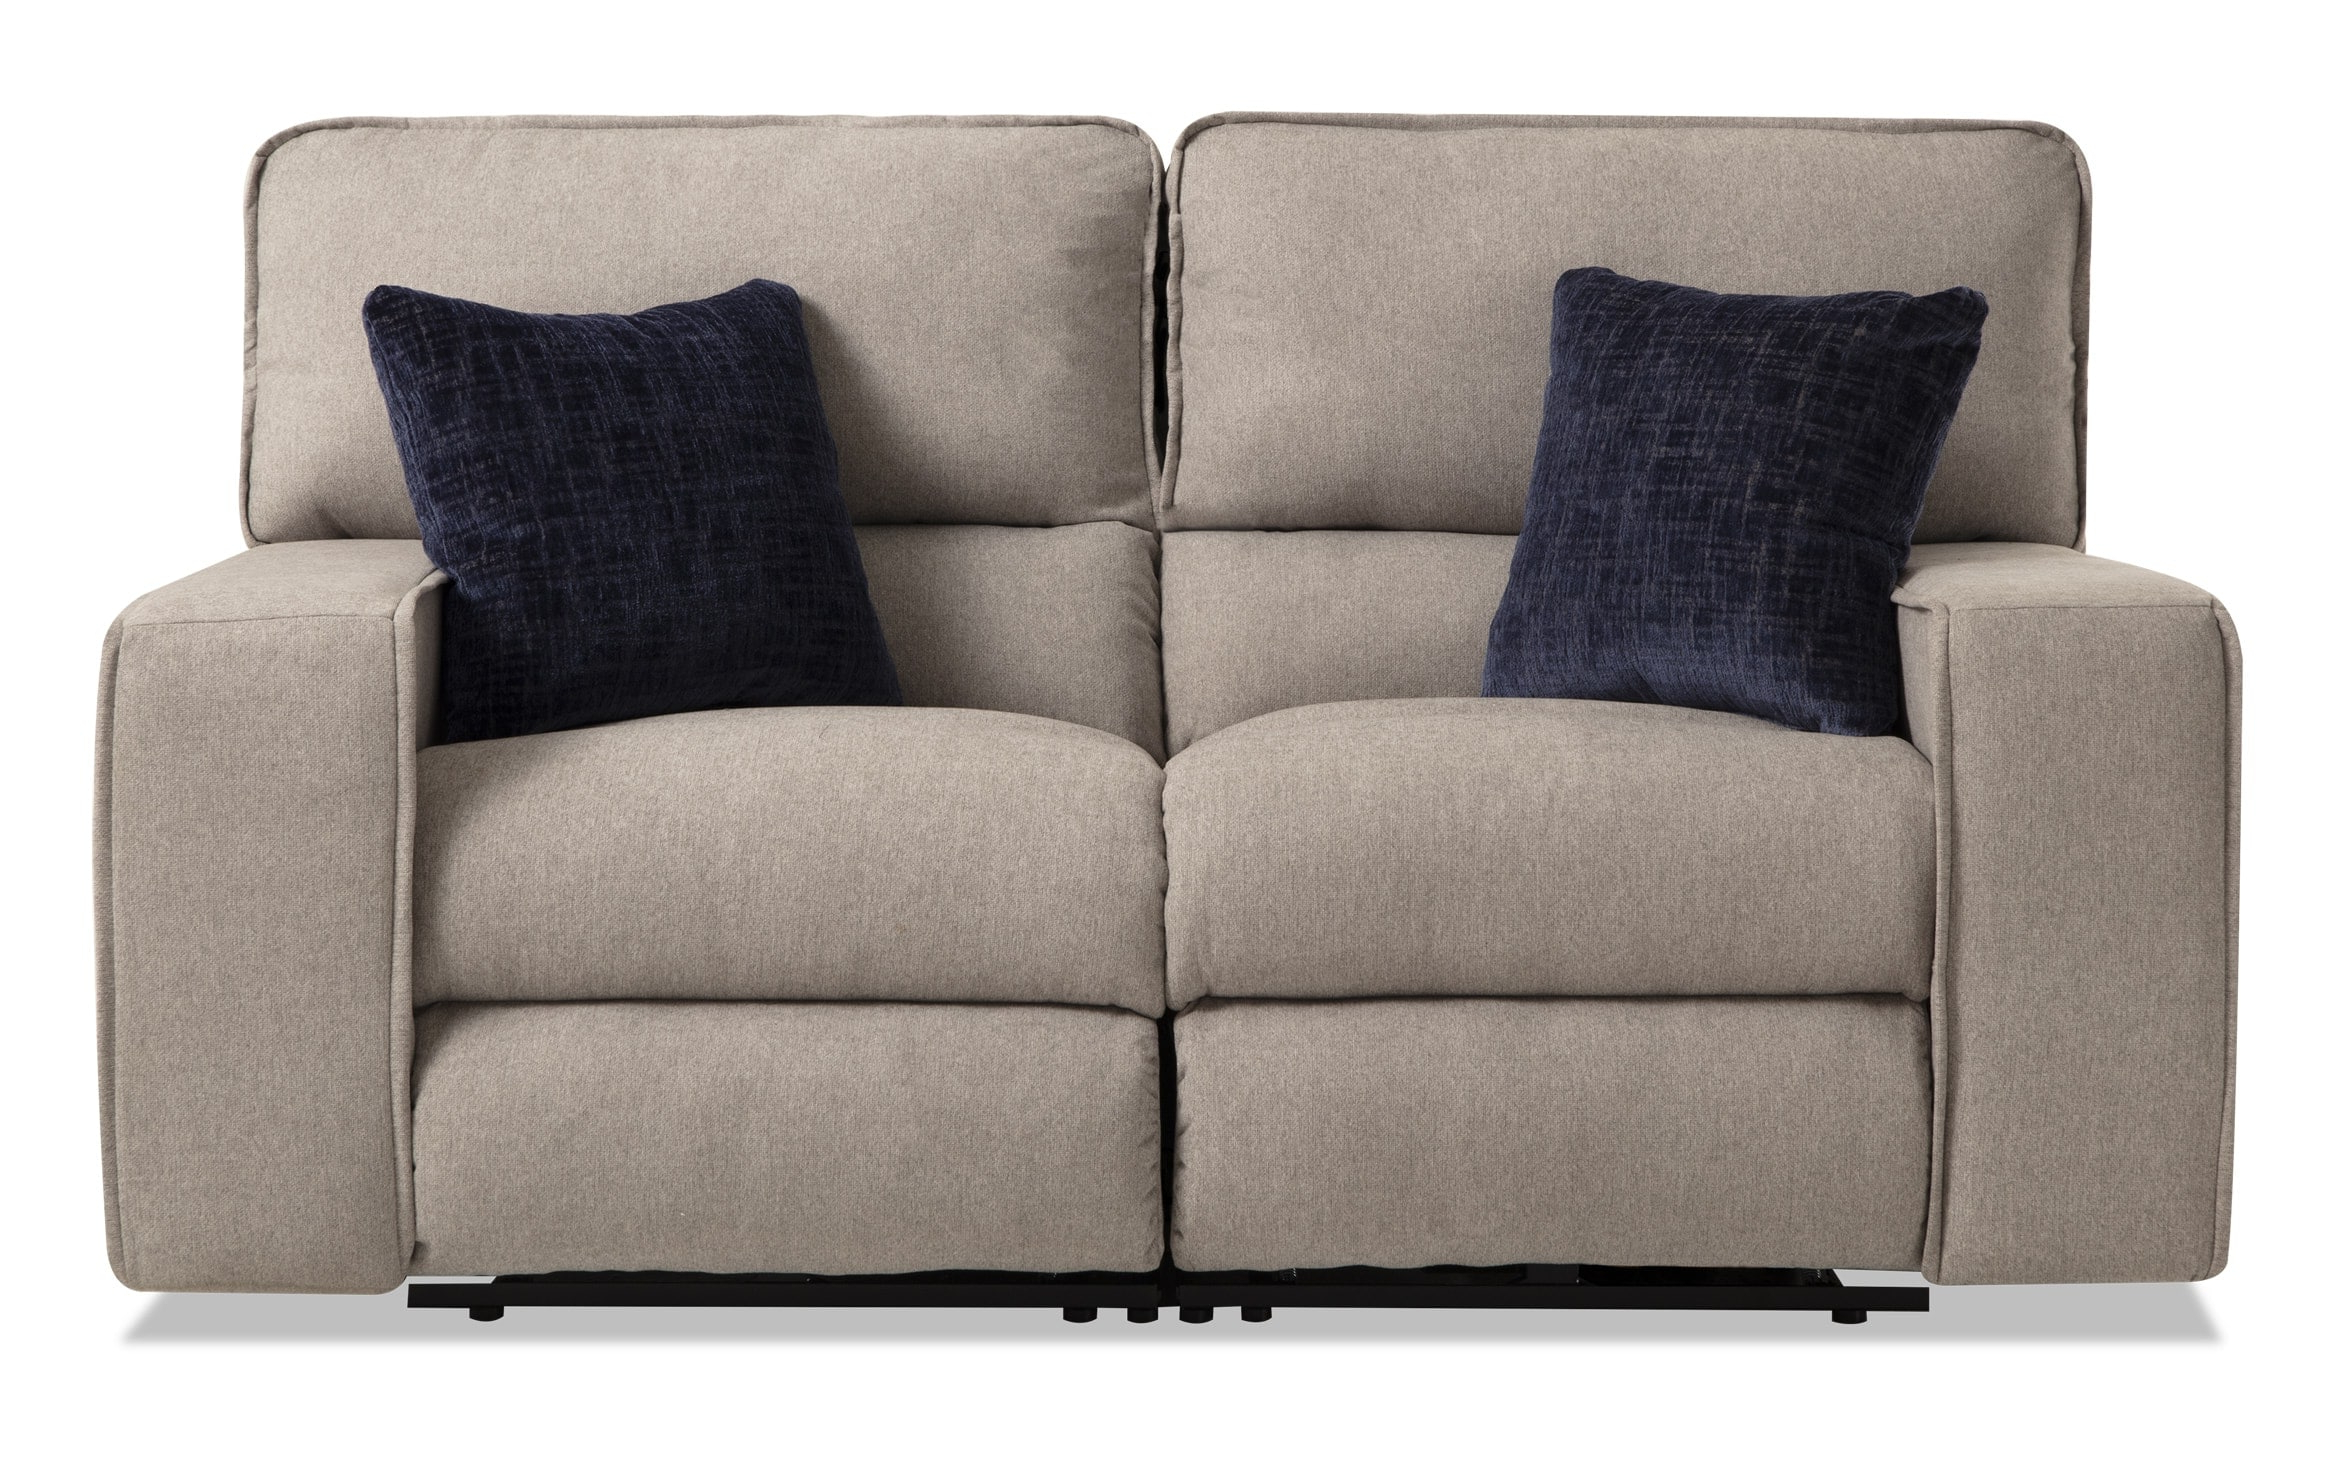 Bobs Furniture Reclining Sofas – Latest Sofa Pictures With Regard To Trendy Navigator Manual Reclining Sofas (View 12 of 15)